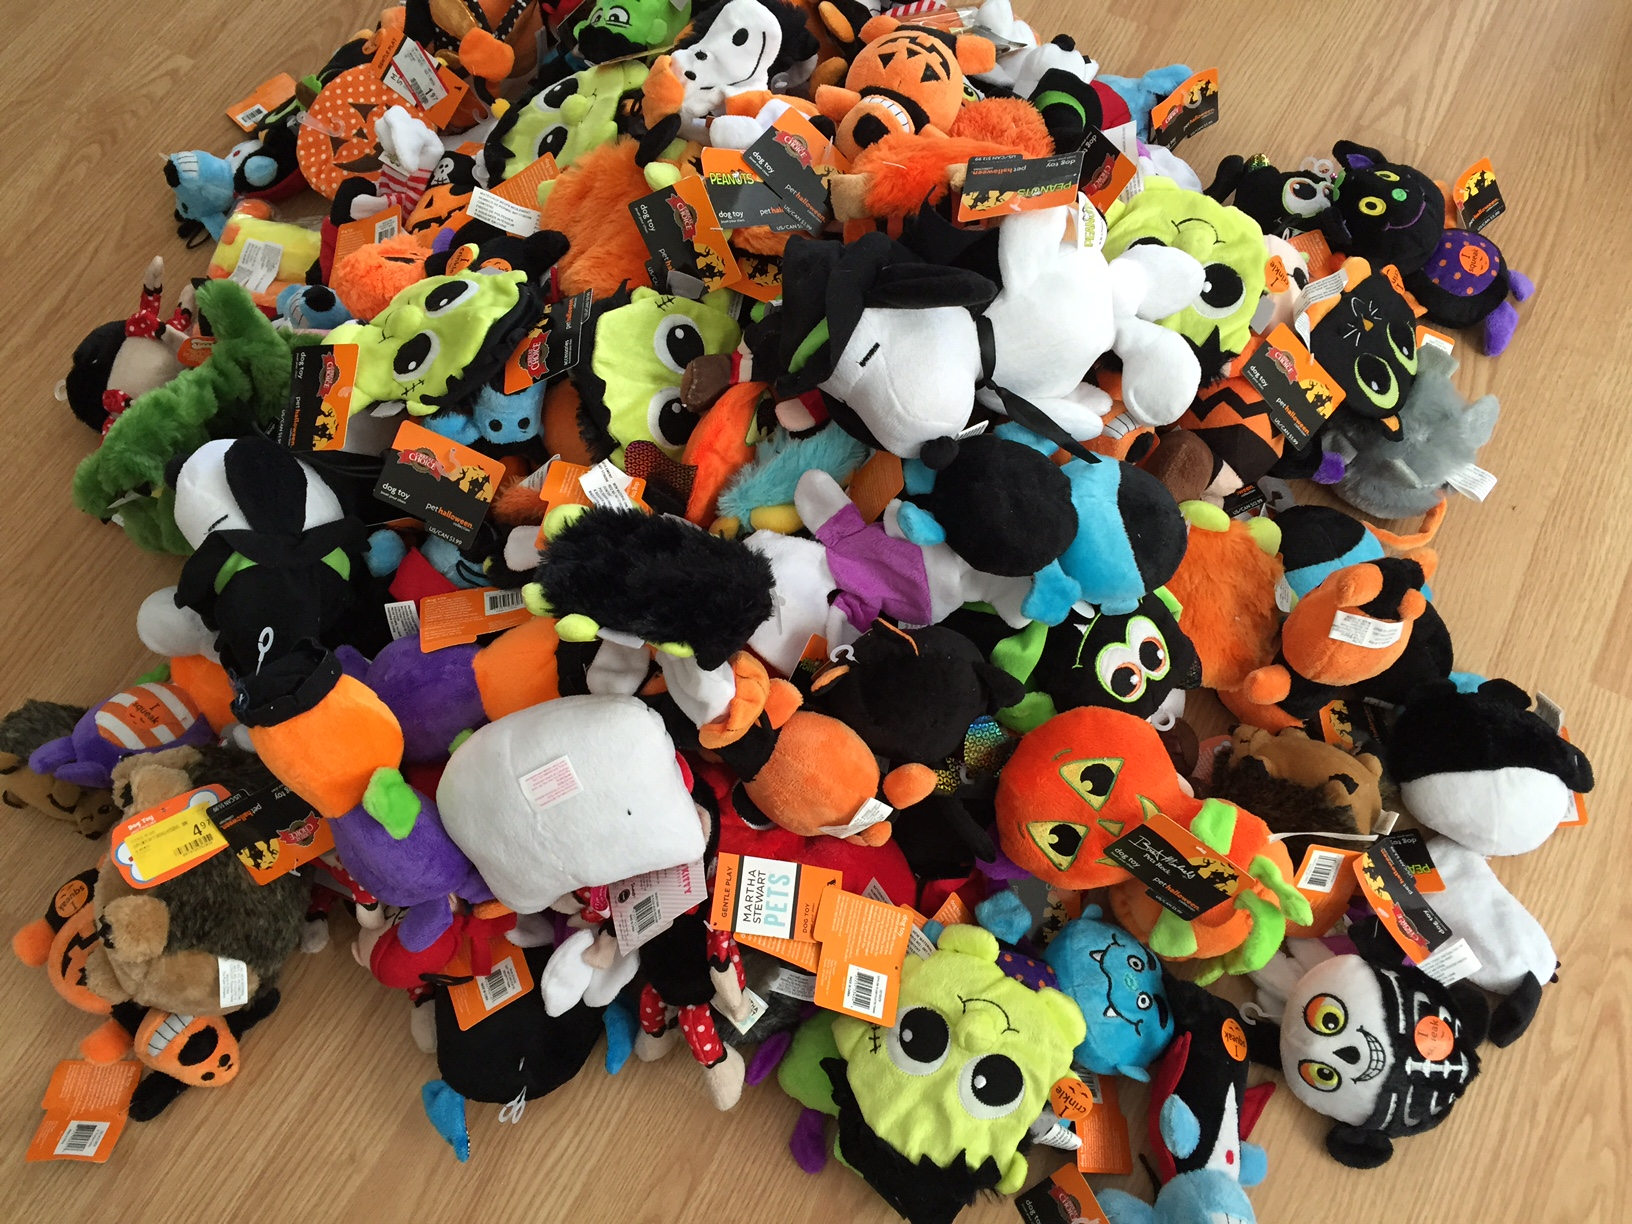 bonaire-animal-shelter-toy-pile.jpg